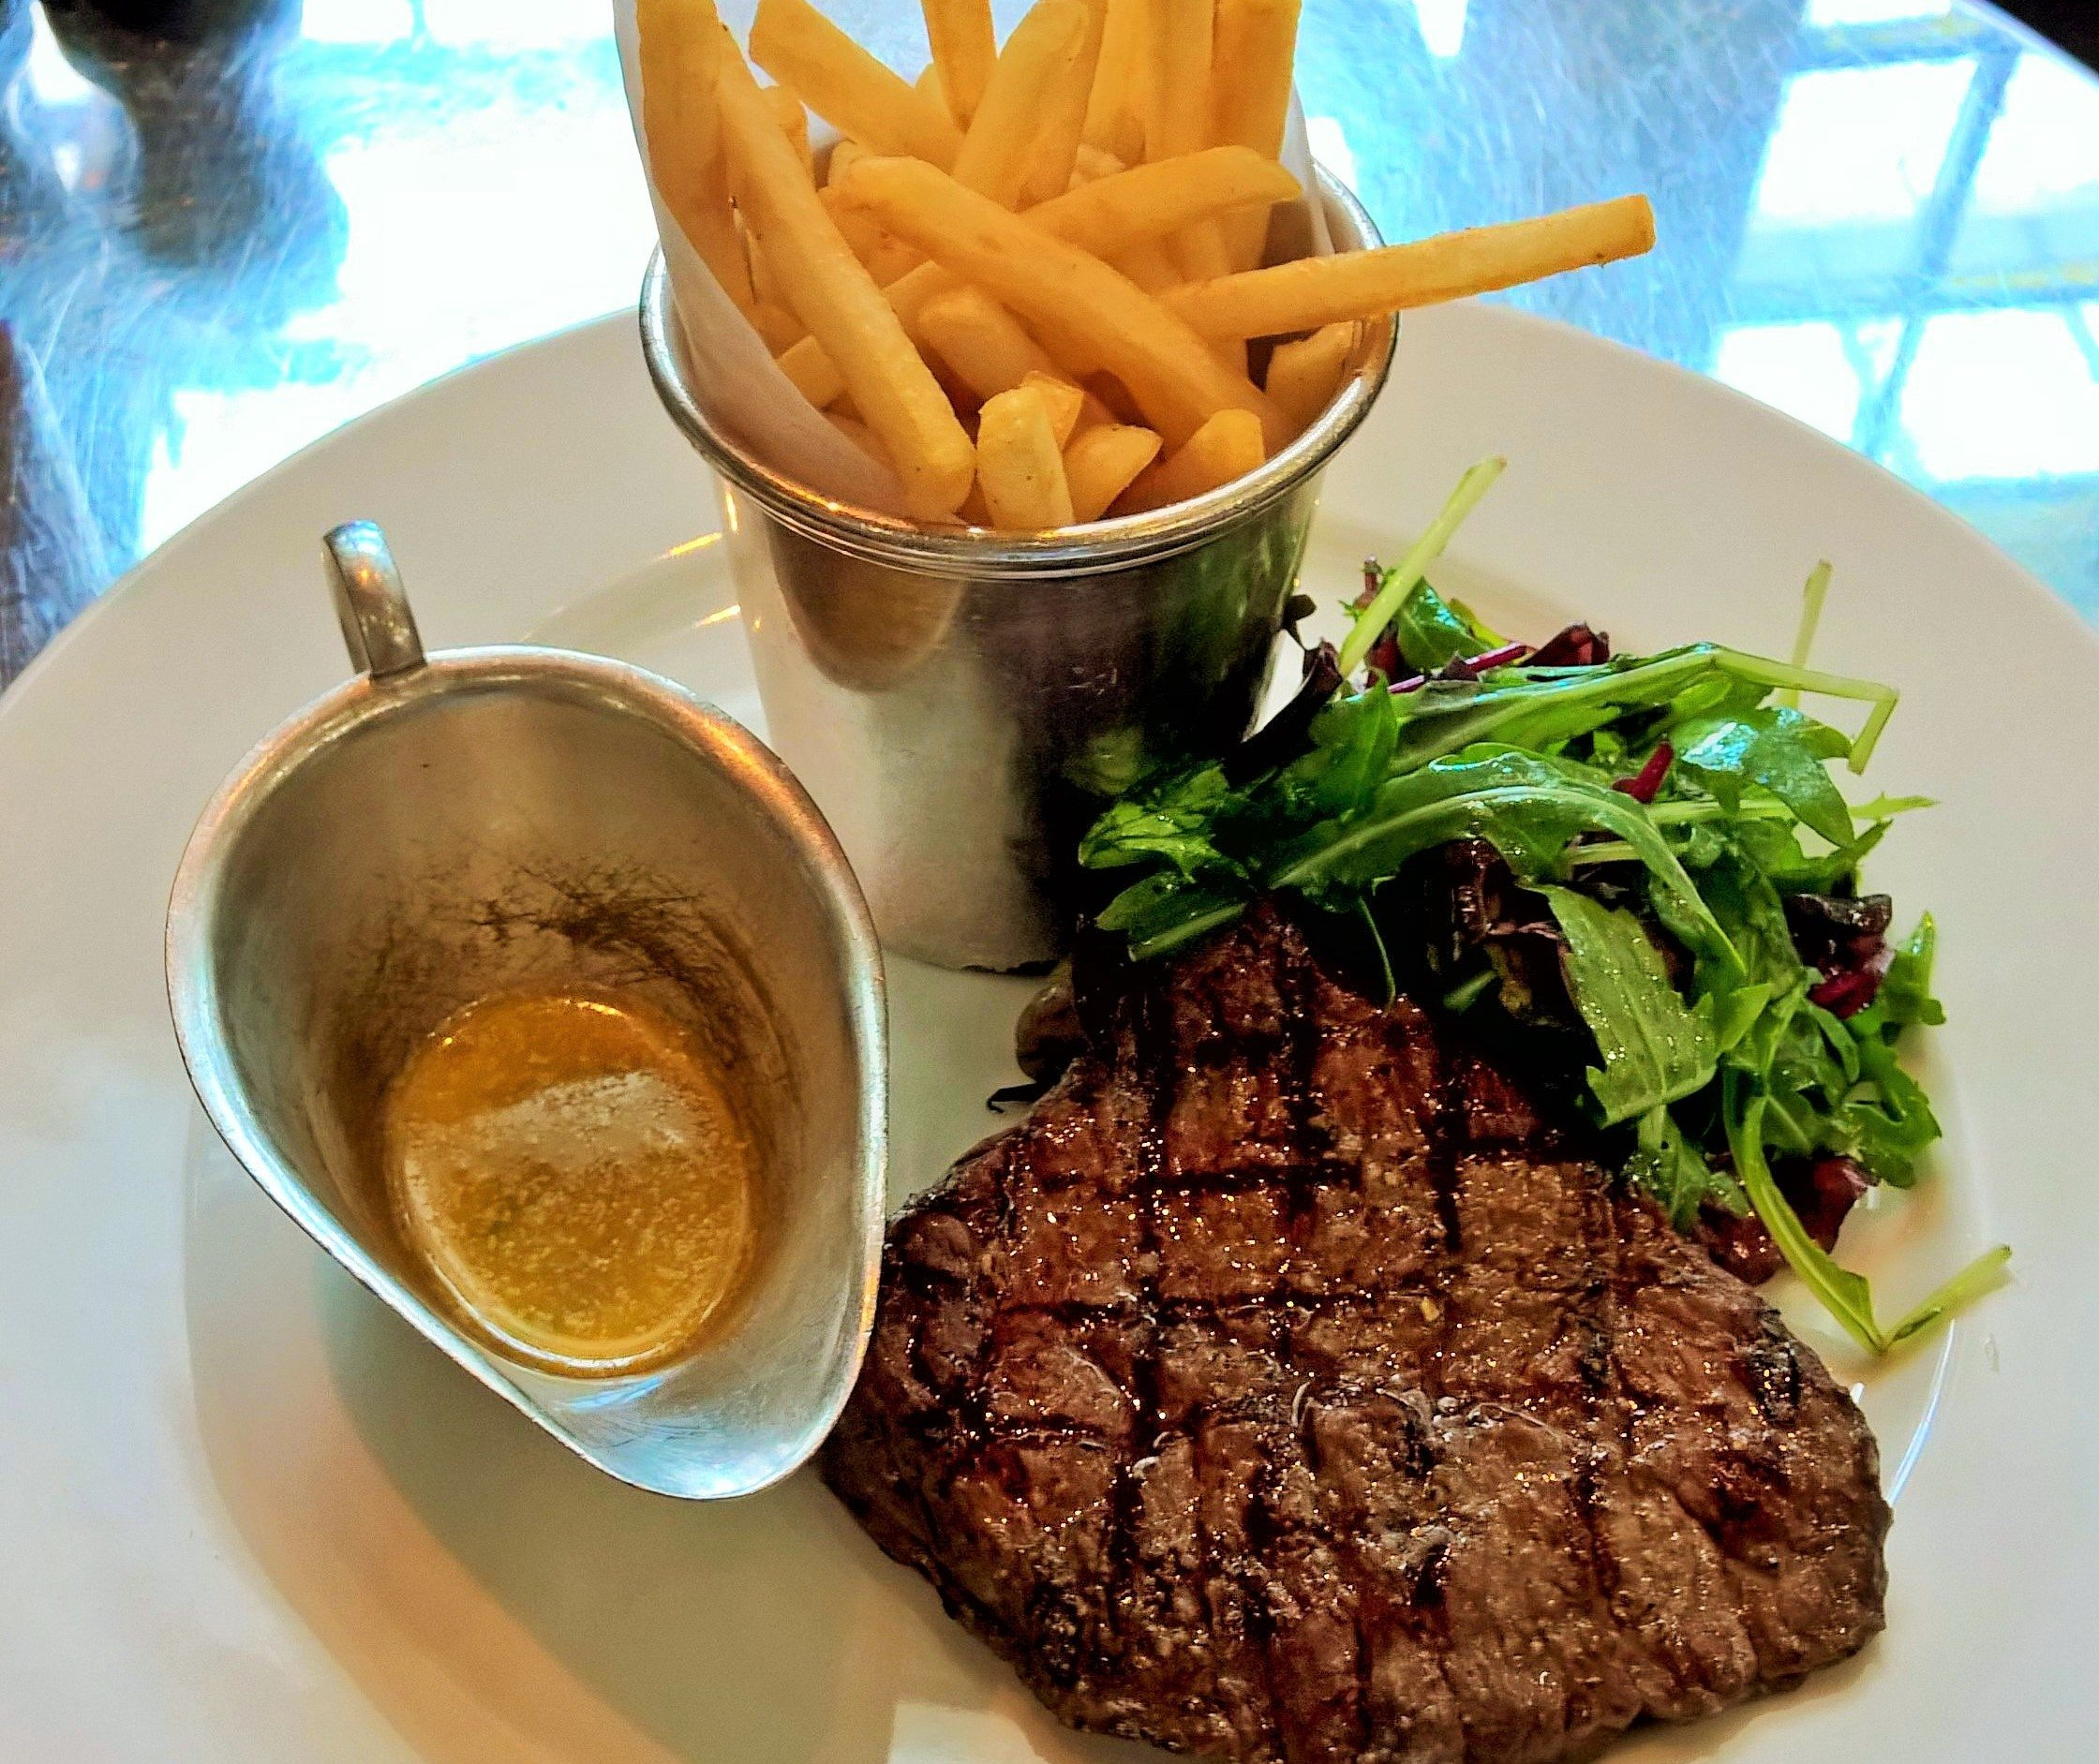 Classic French dish of thin cut steak and fries